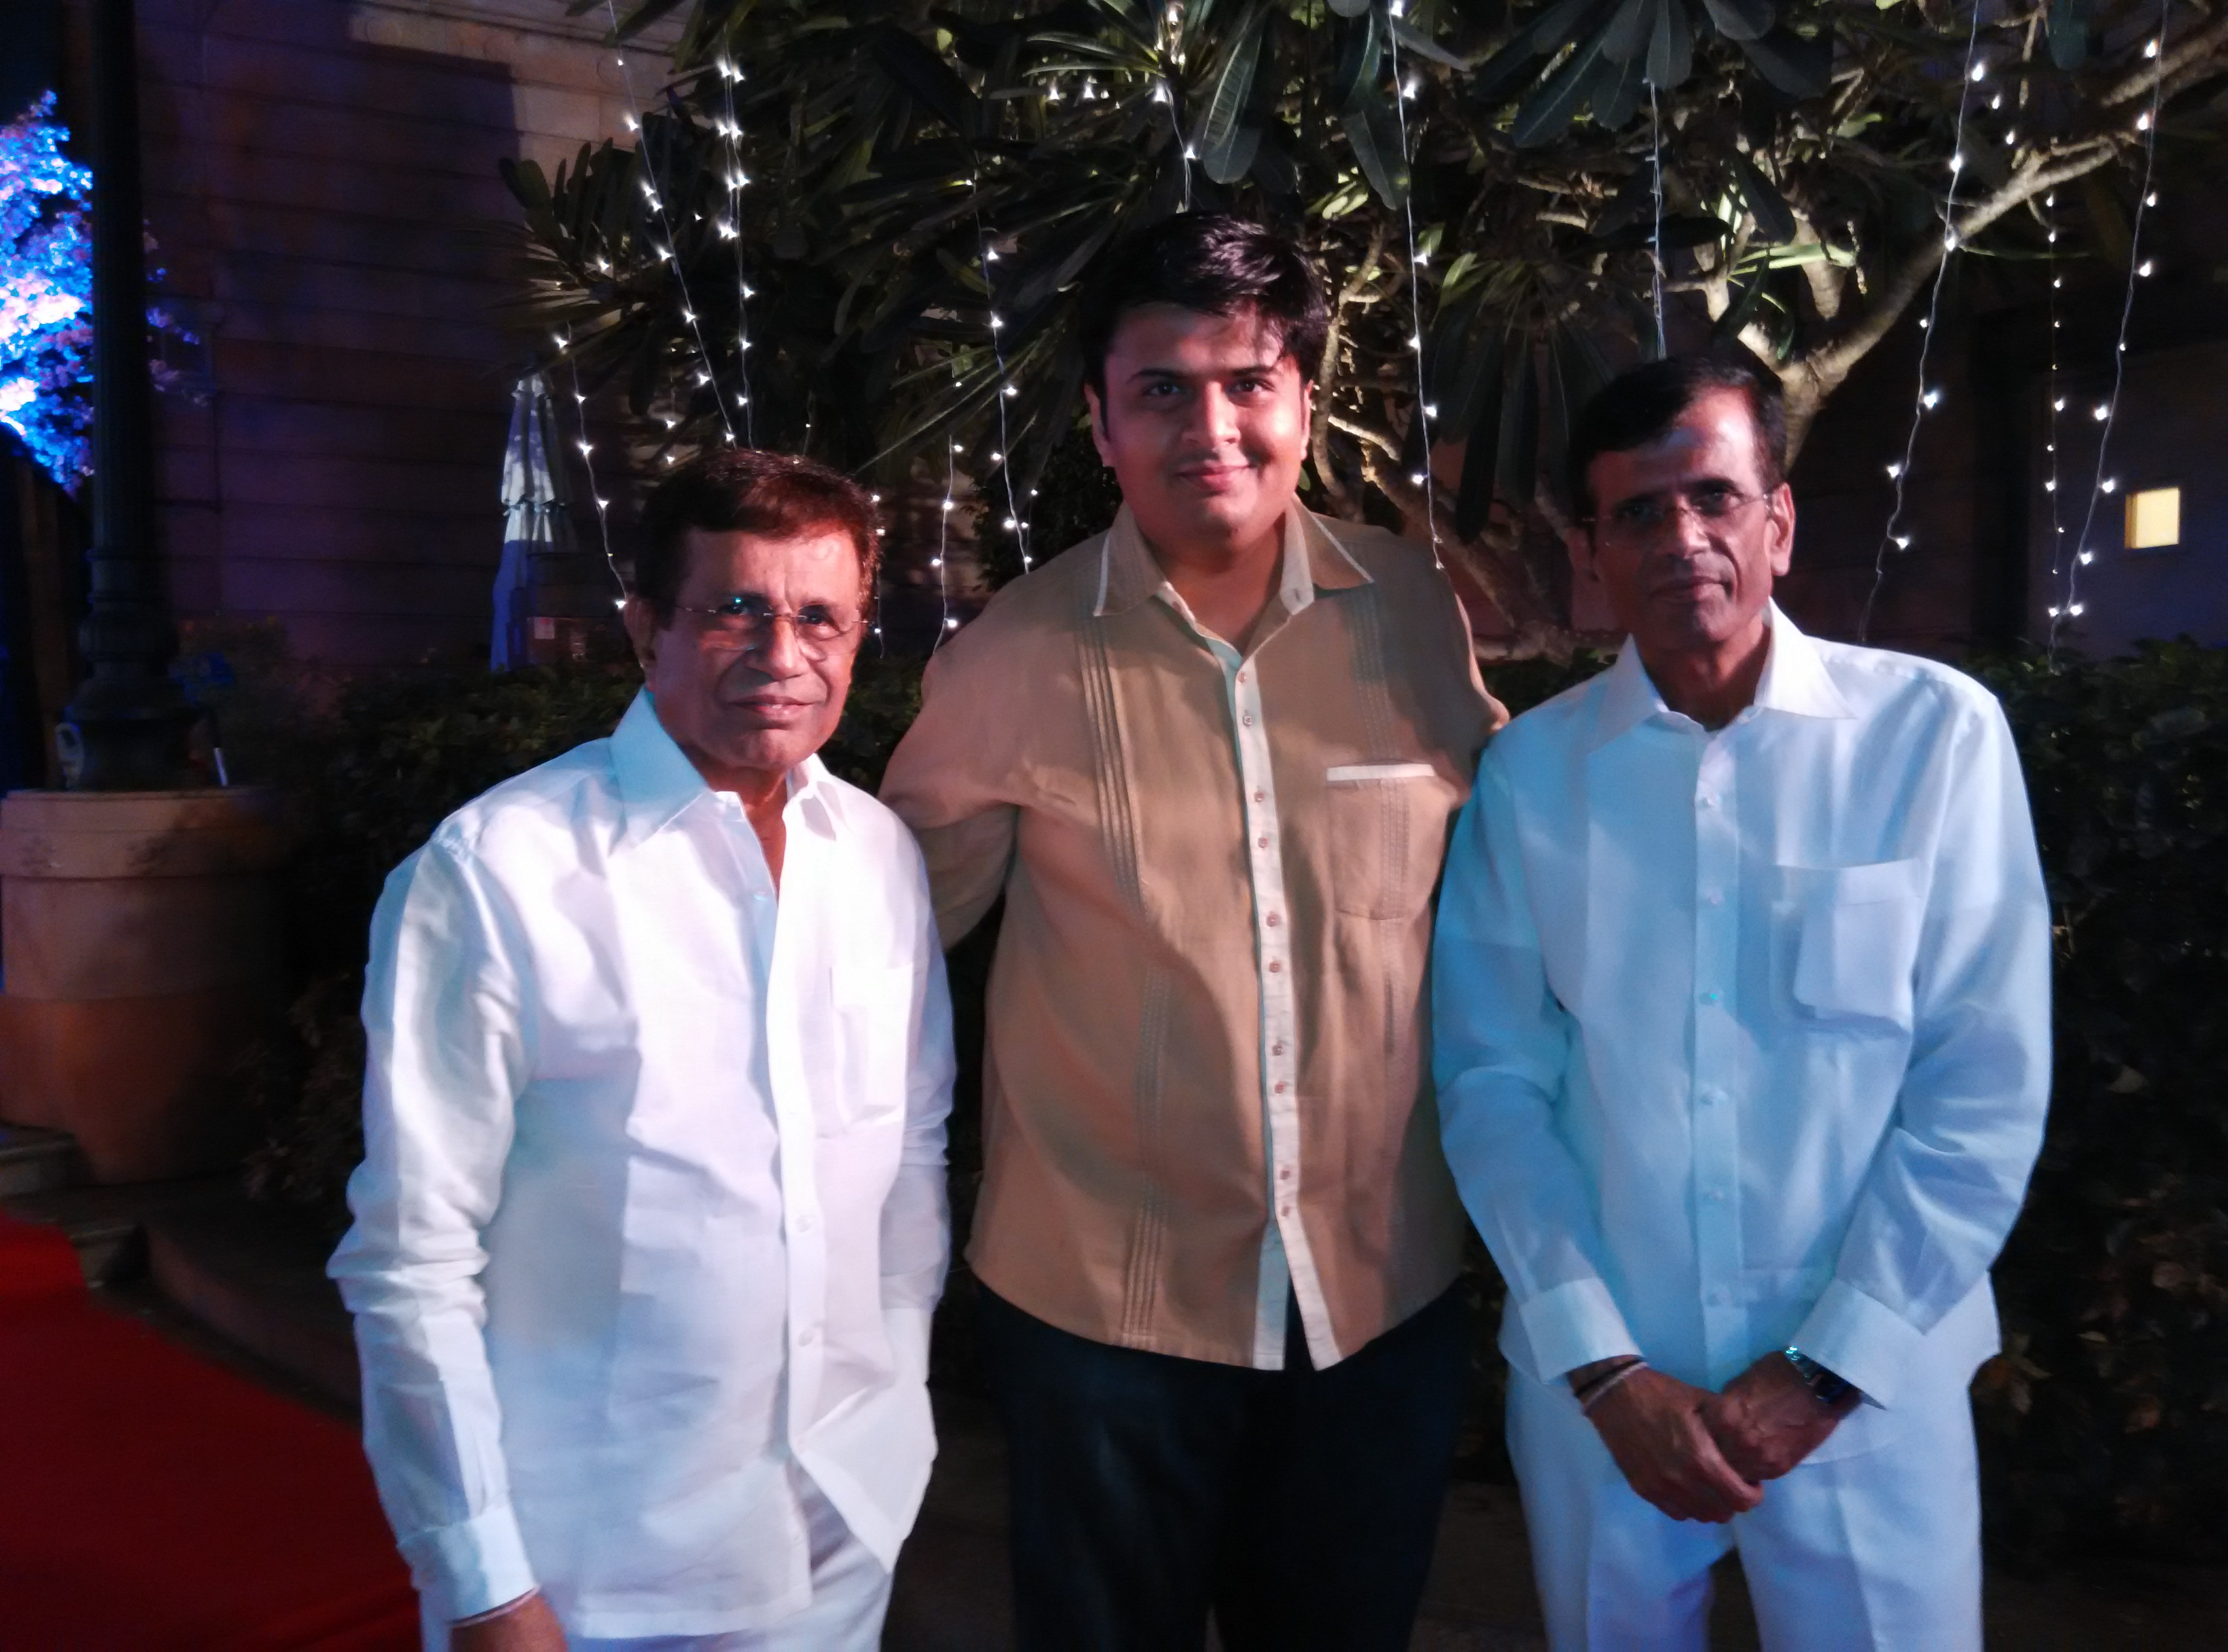 With Movie Directors Abbas and Mustan